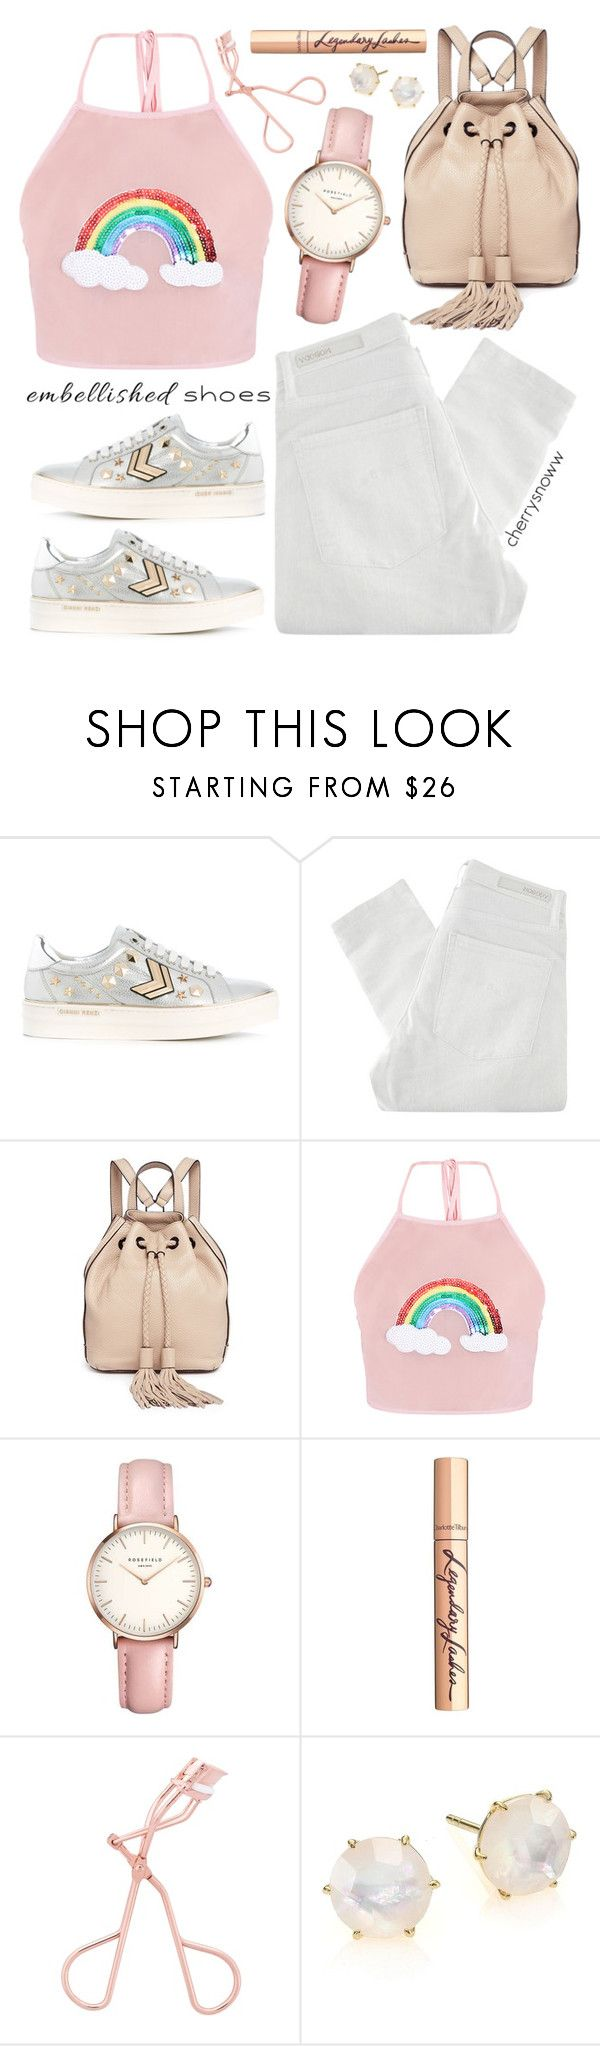 """""""Spring outfit: Embellished shoes"""" by cherrysnoww ❤ liked on Polyvore featuring Gianni Renzi, Nobody Denim, Rebecca Minkoff, Topshop, Charlotte Tilbury and Ippolita"""